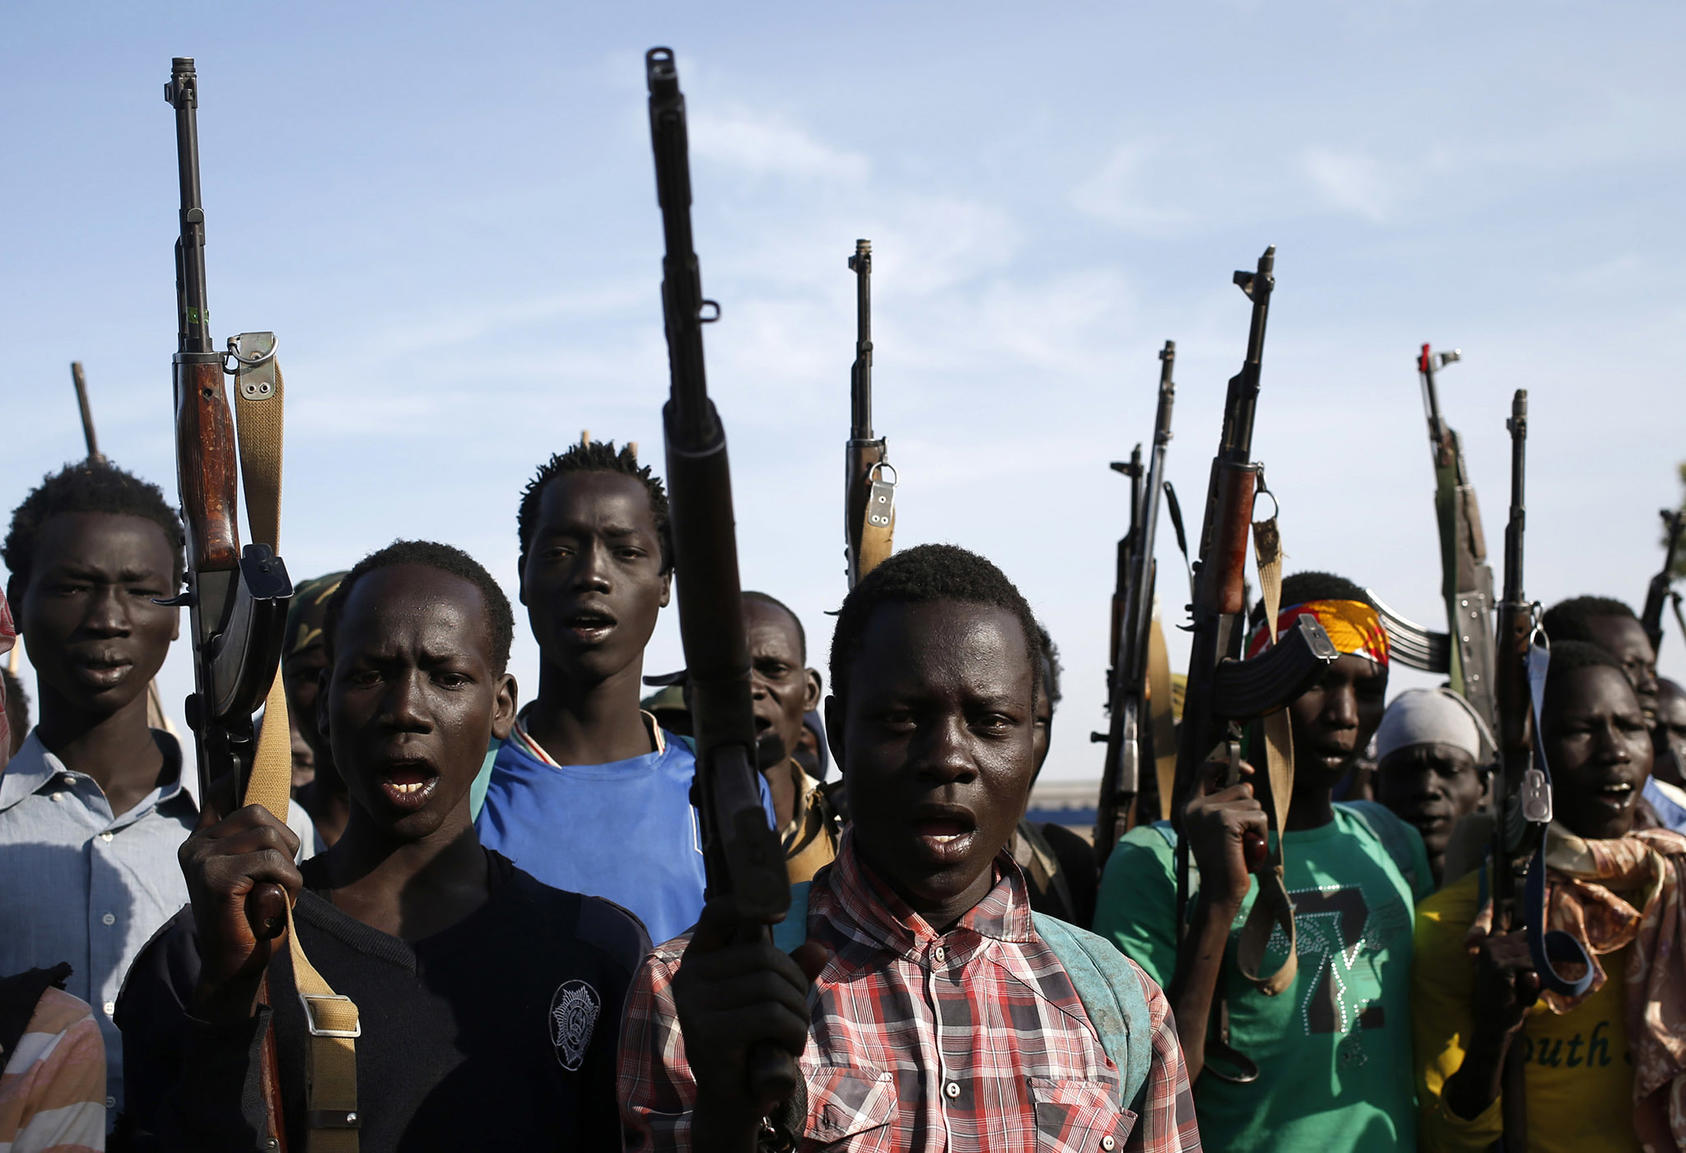 Rebel fighters hold their weapons in Upper Nile State in February 2014. (Goran Tomasevic/Reuters)